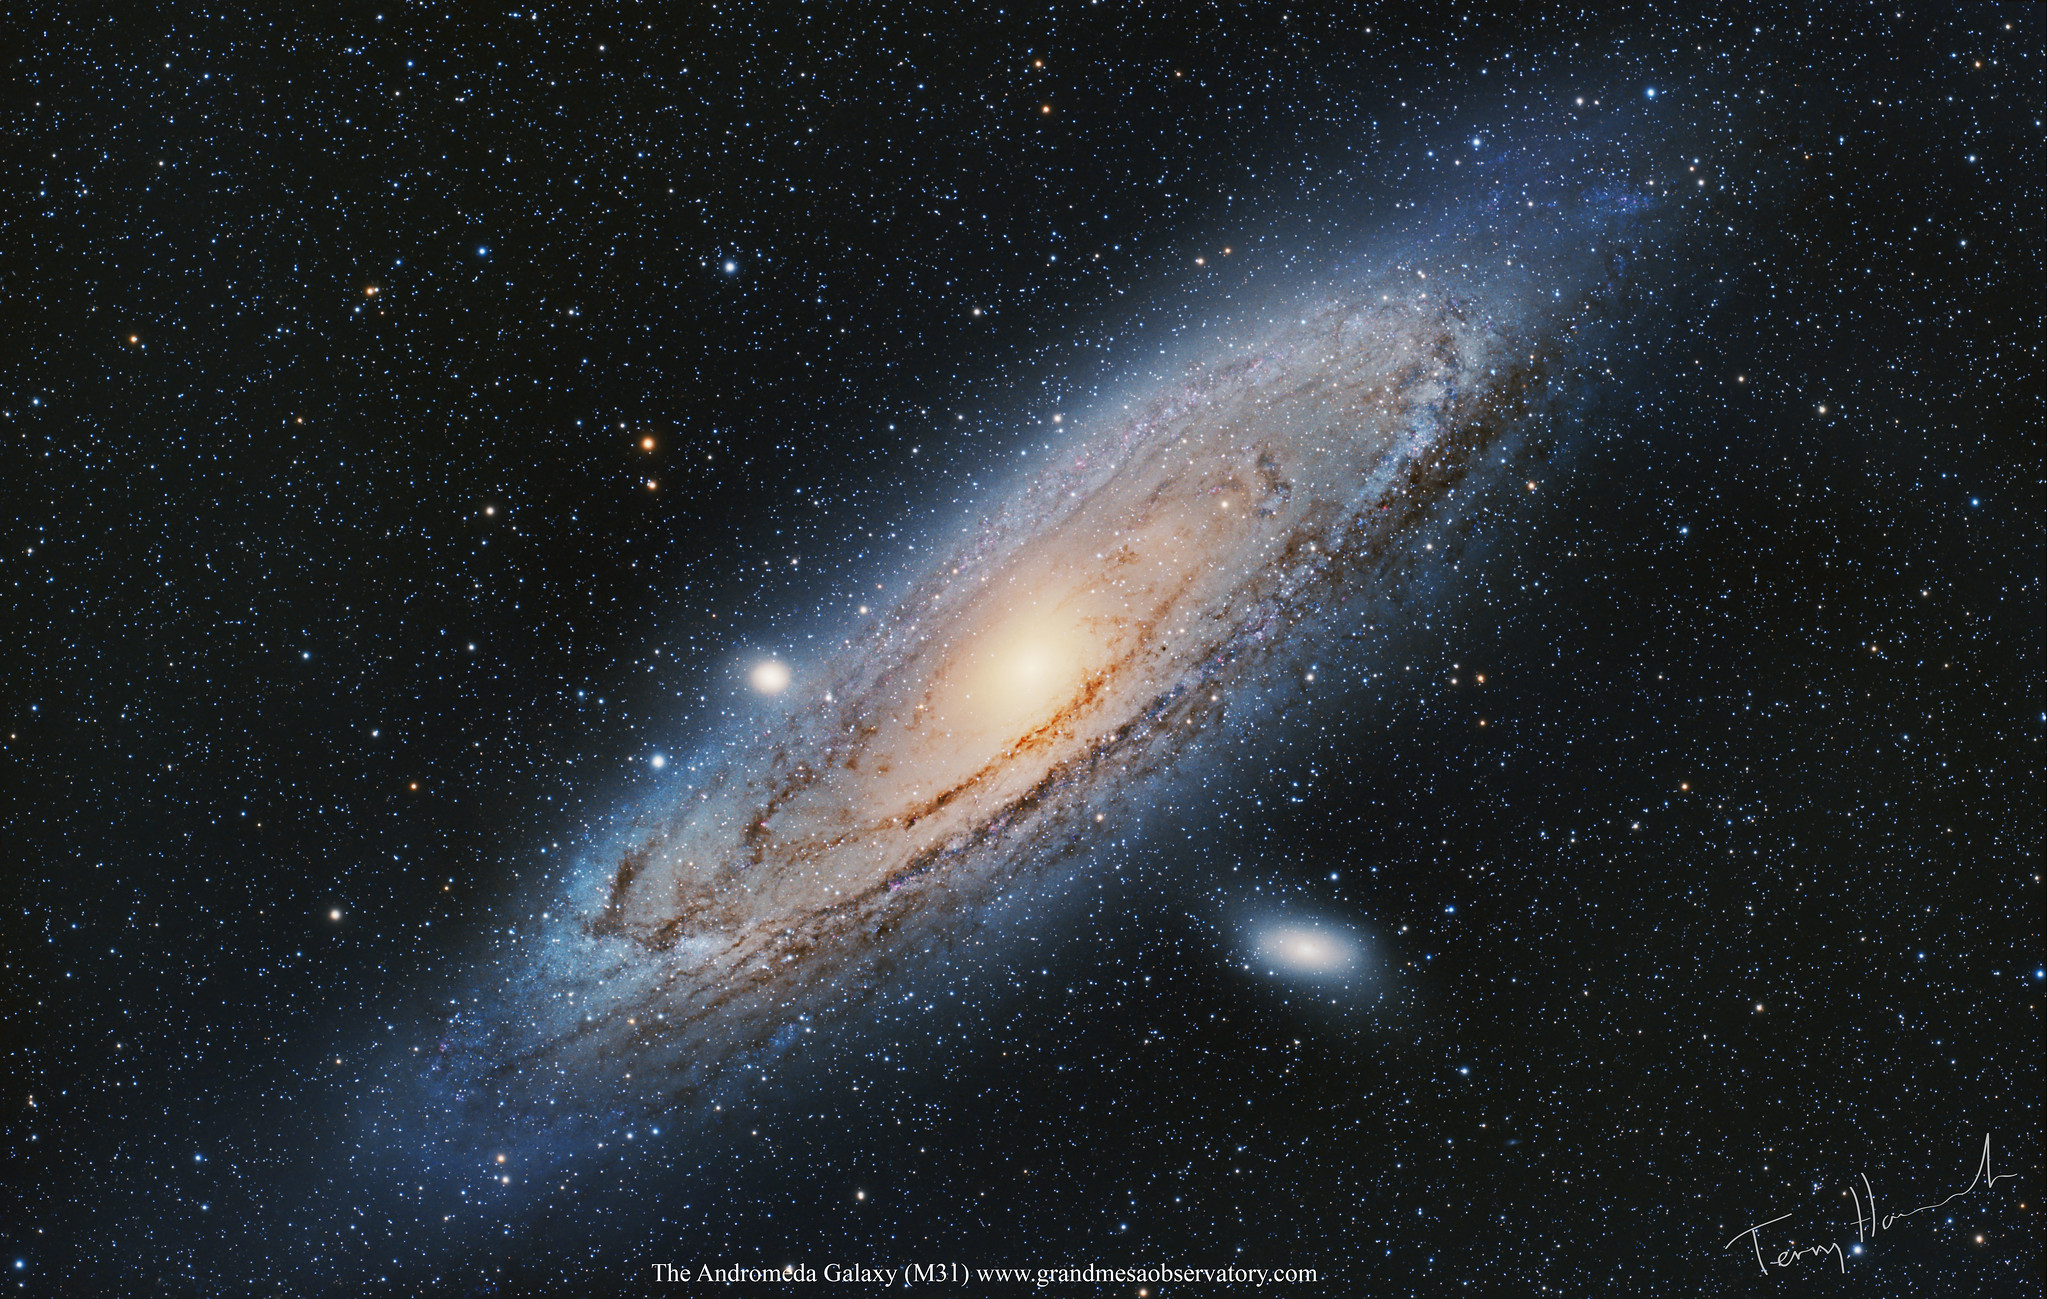 The Andromeda Galaxy M31 Location: GrandMesaObservatory.com Whitewater, Colorado  RGB 141x 2 min  Camera: QHY367C  Gain 2850, Offset 76 with Dark Frames no Flat.  Optics: Walter Holloway`s Takahashi FSQ 130 APO Refractor @ F5  EQ Mount: Paramount ME  Image Acquisition software Maxim DL5  Registed, Calibrated and Stacked in Deep Sky Stacker  Post Processed with Pixinsight and Photoshop CS6